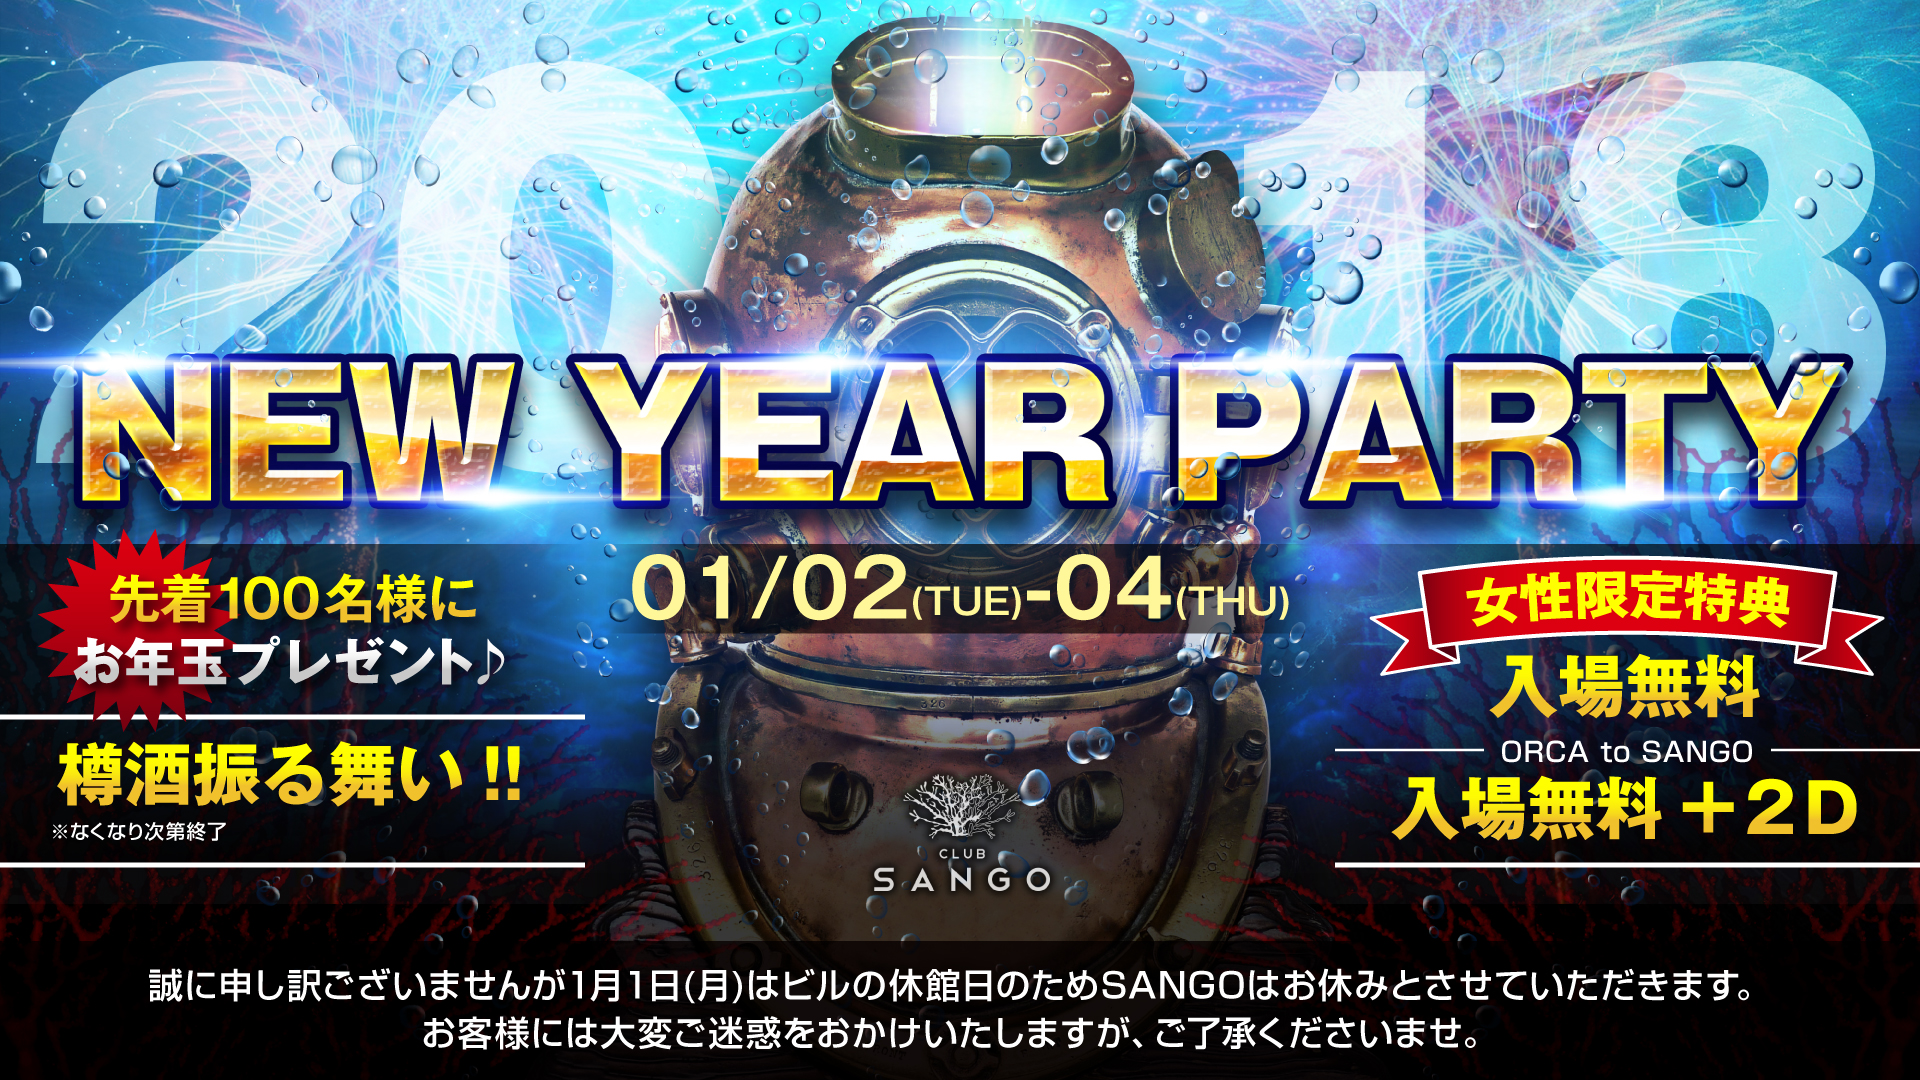 NEW YEAR PARTY 2018.01.02(TUE) - 04(THU)